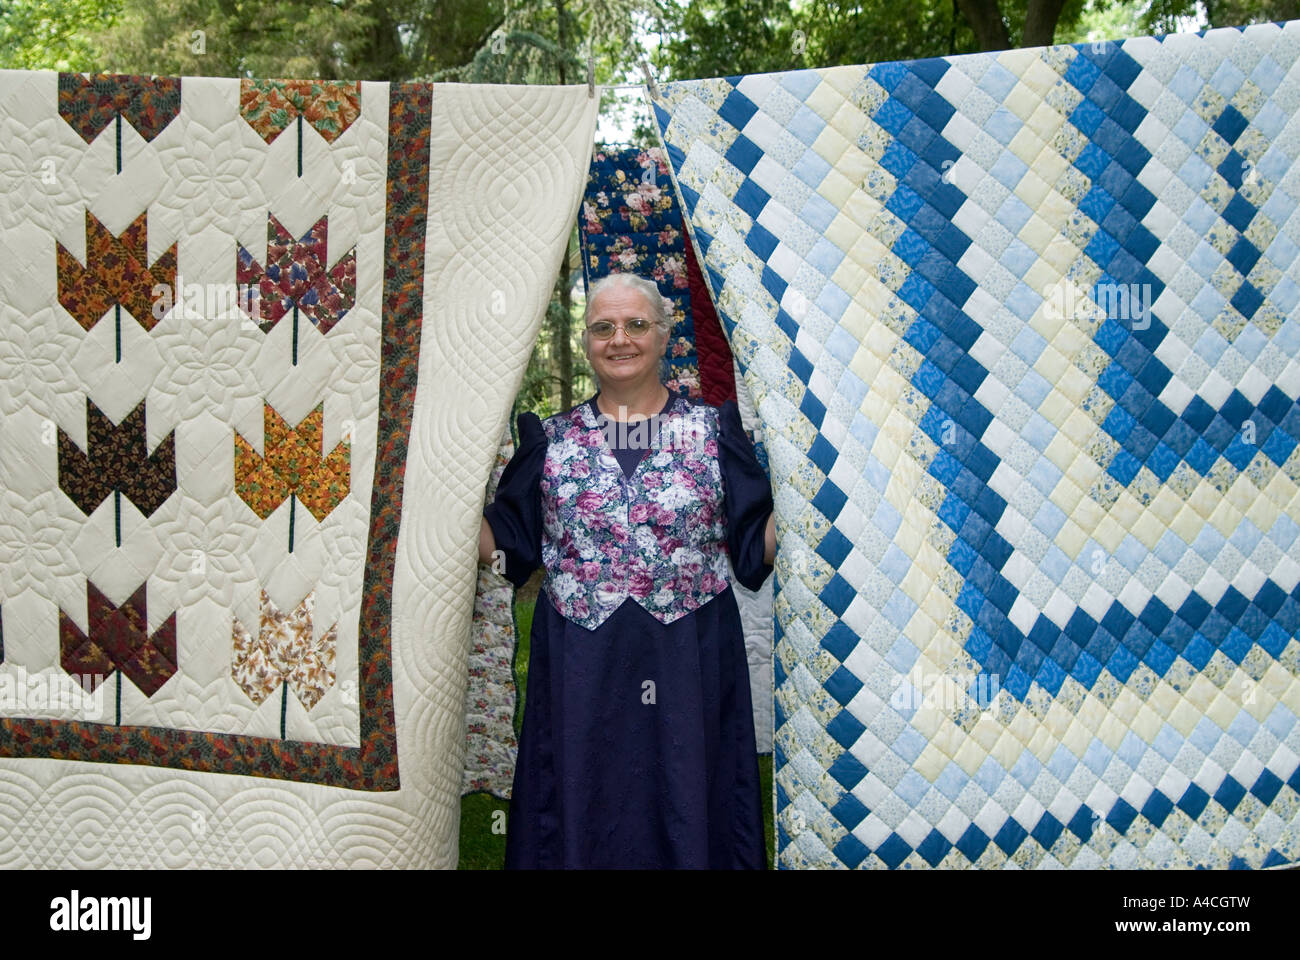 Quilt Quilts Stock Photos Quilt Quilts Stock Images Alamy